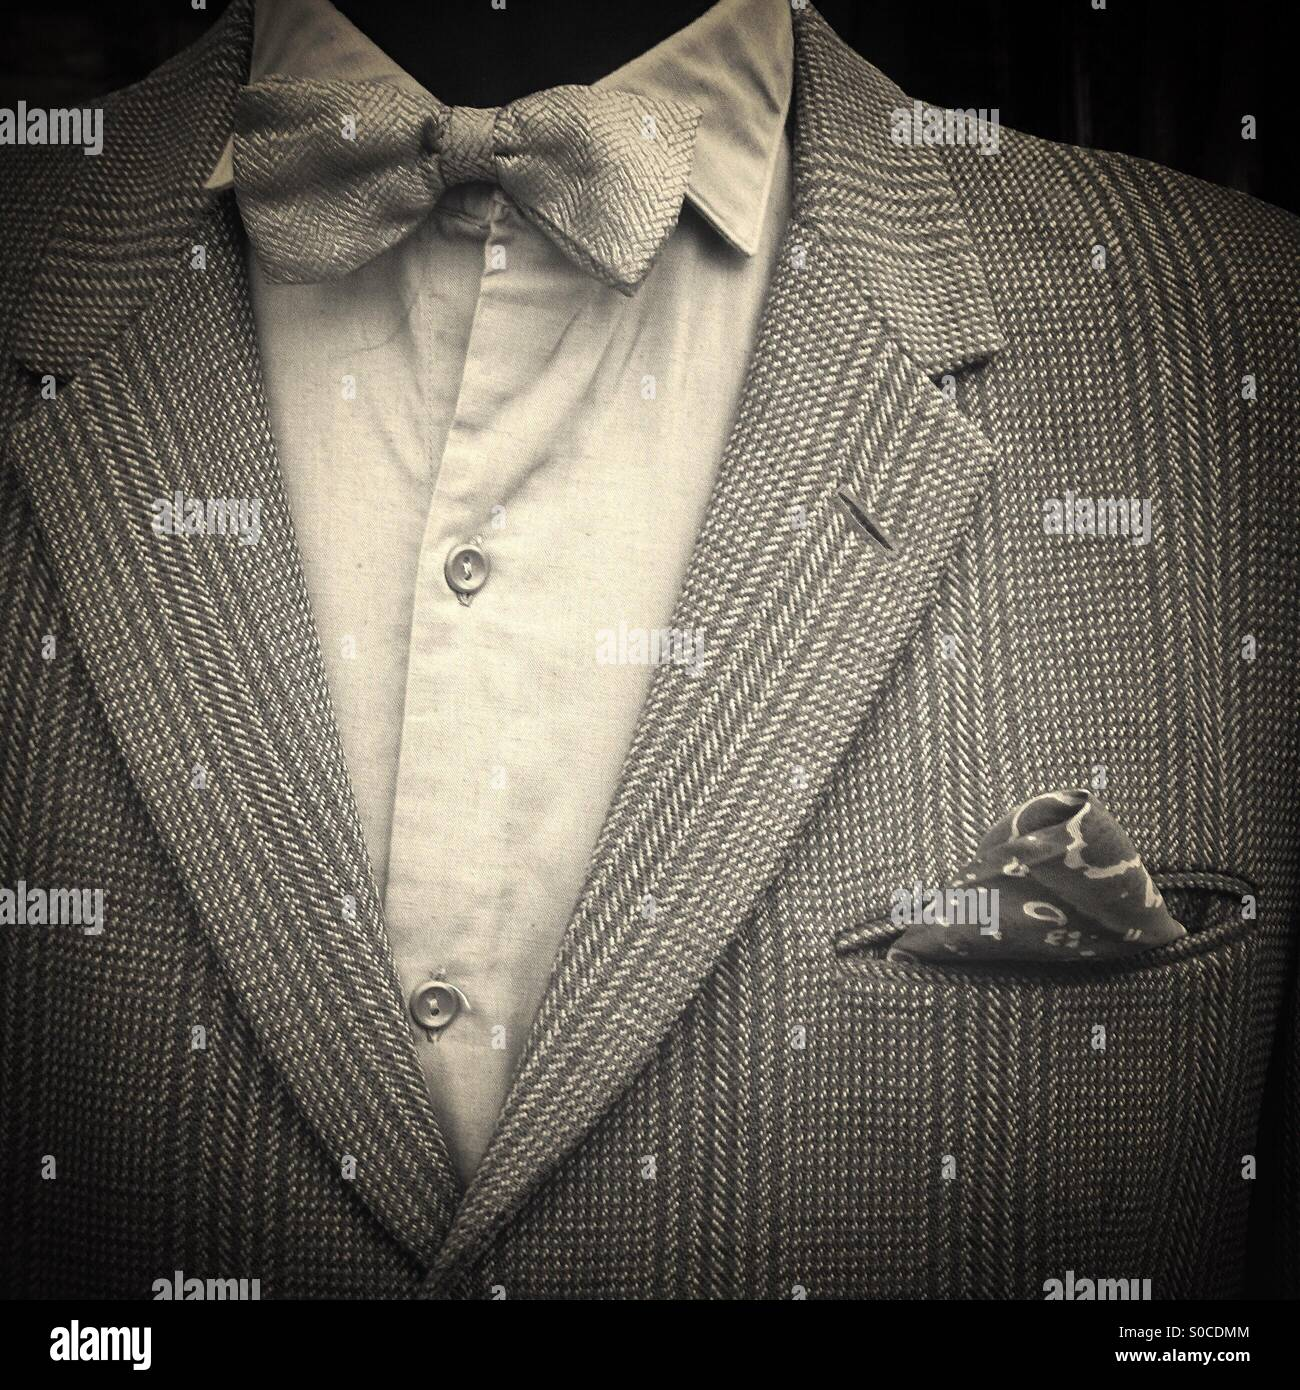 Manikin with bow tie and tweed jacket - Stock Image